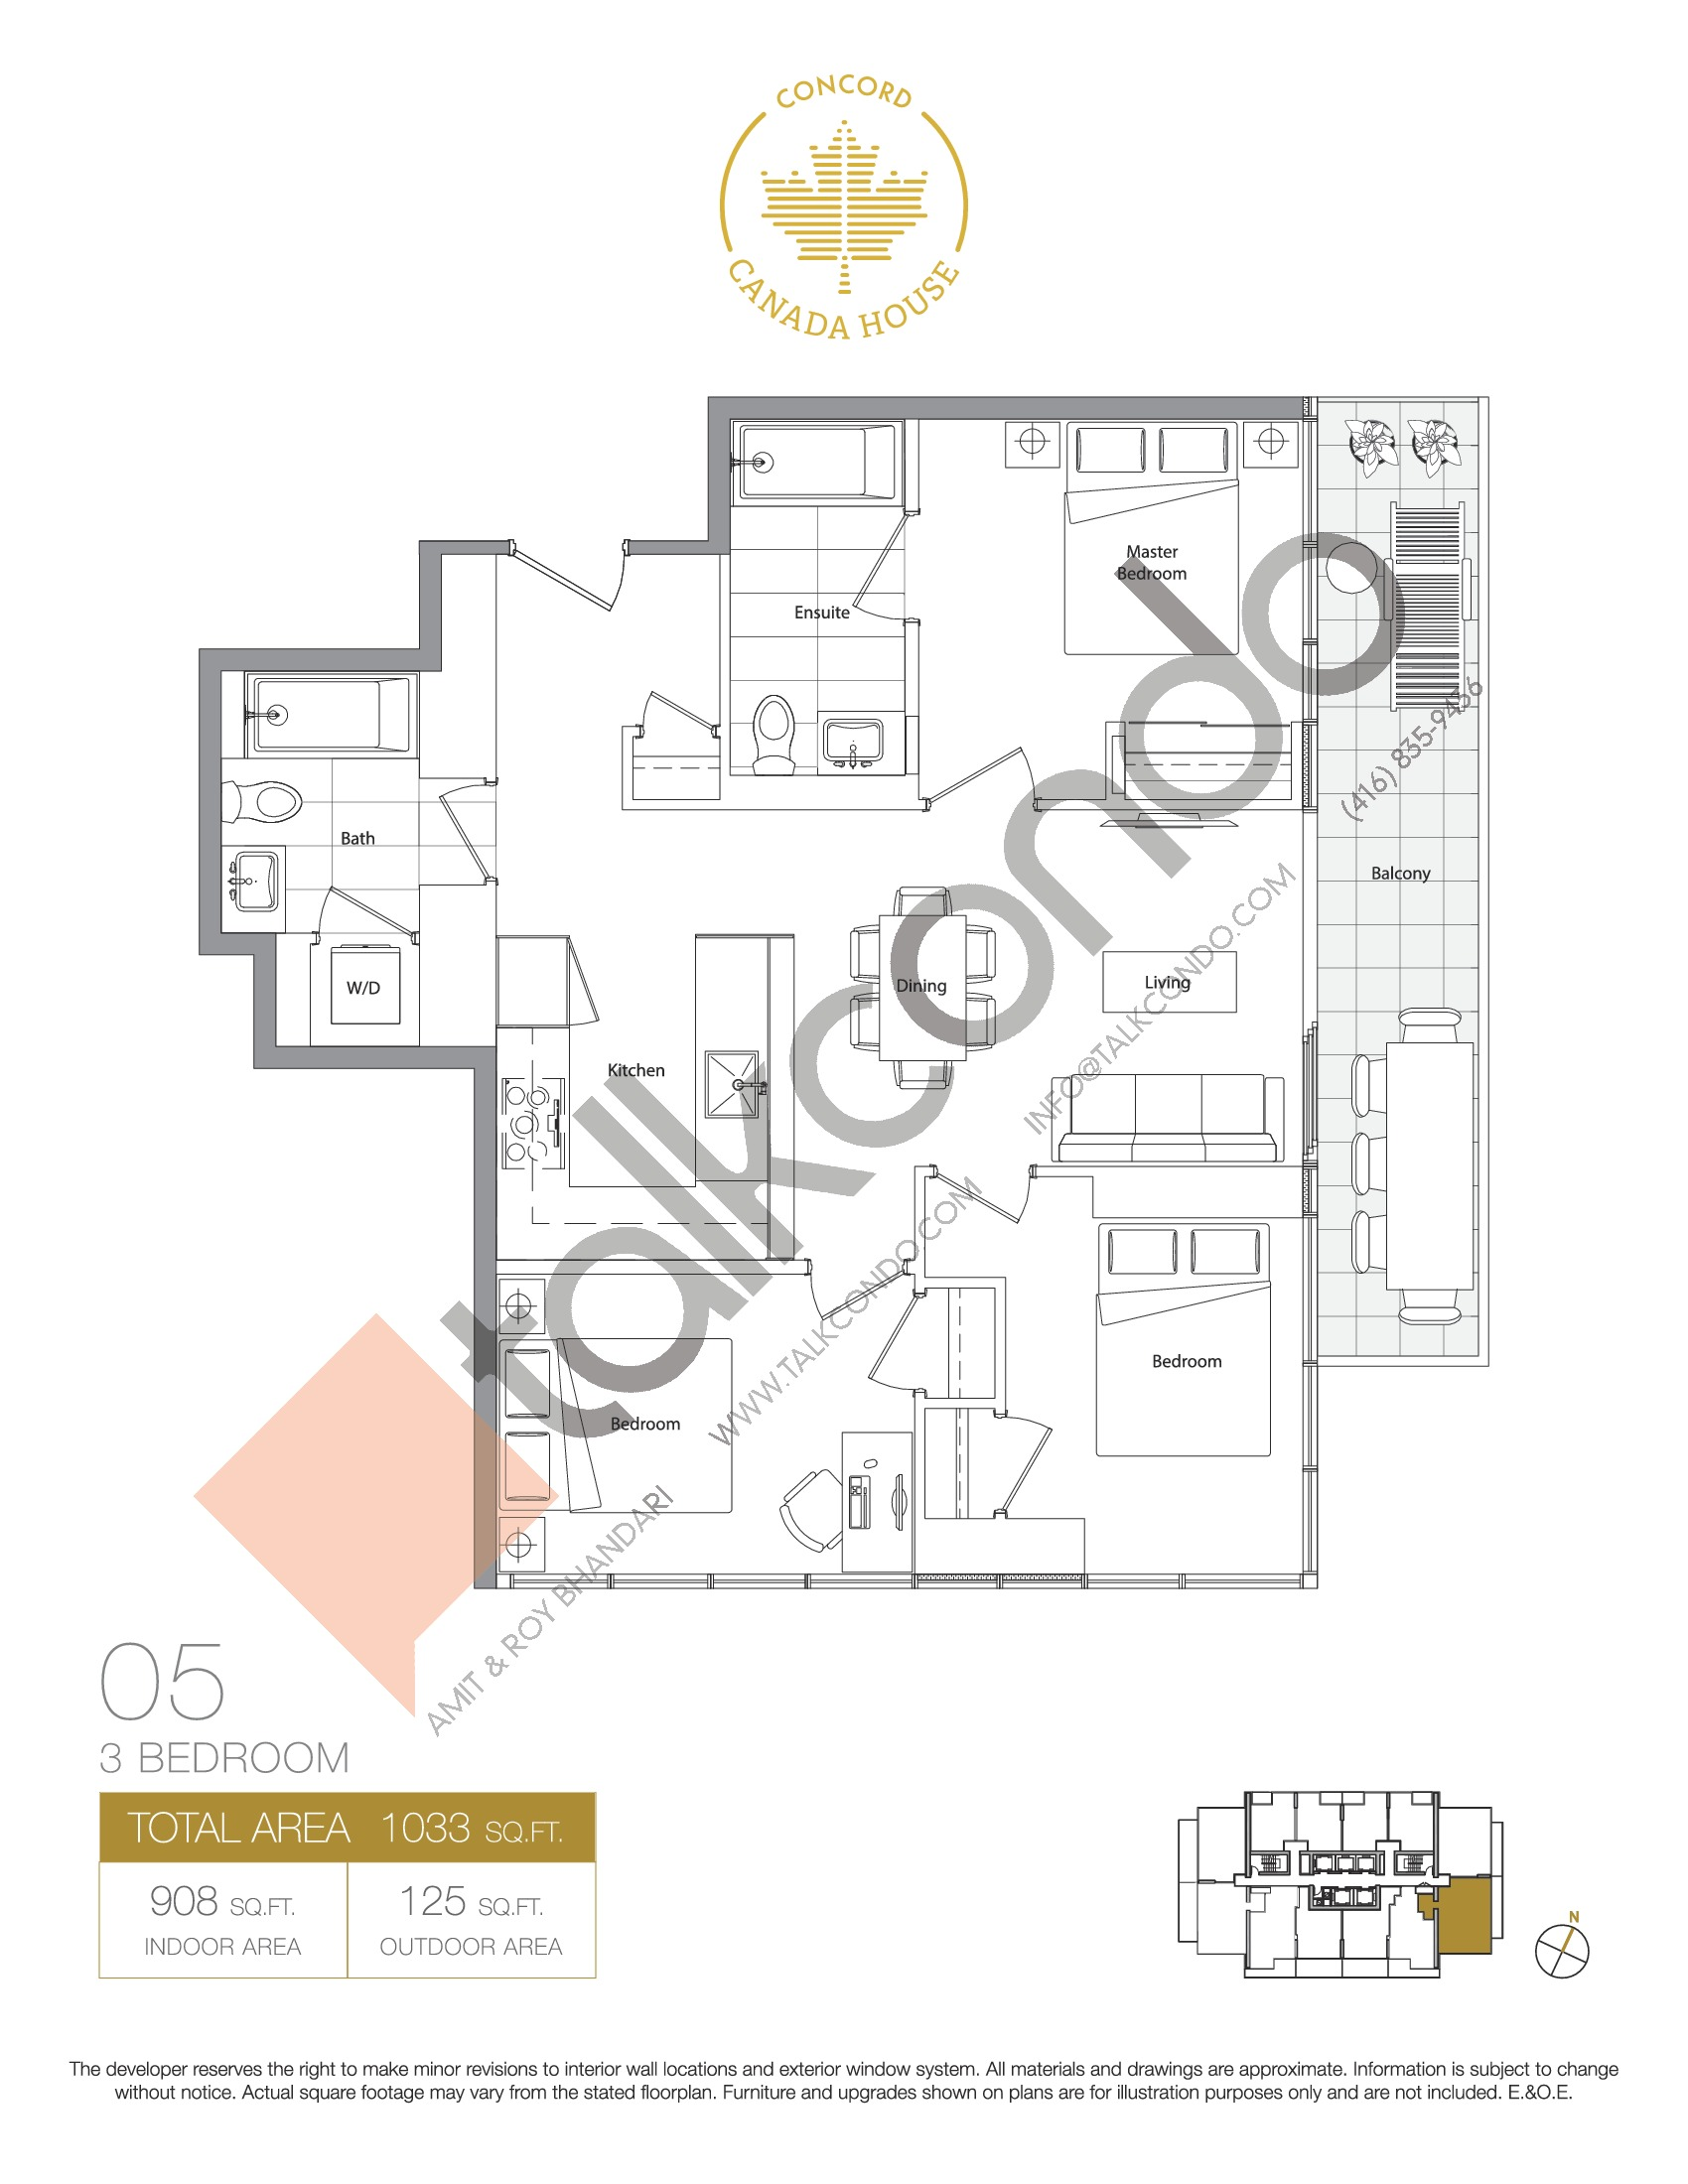 05 - East Tower Floor Plan at Concord Canada House Condos - 908 sq.ft